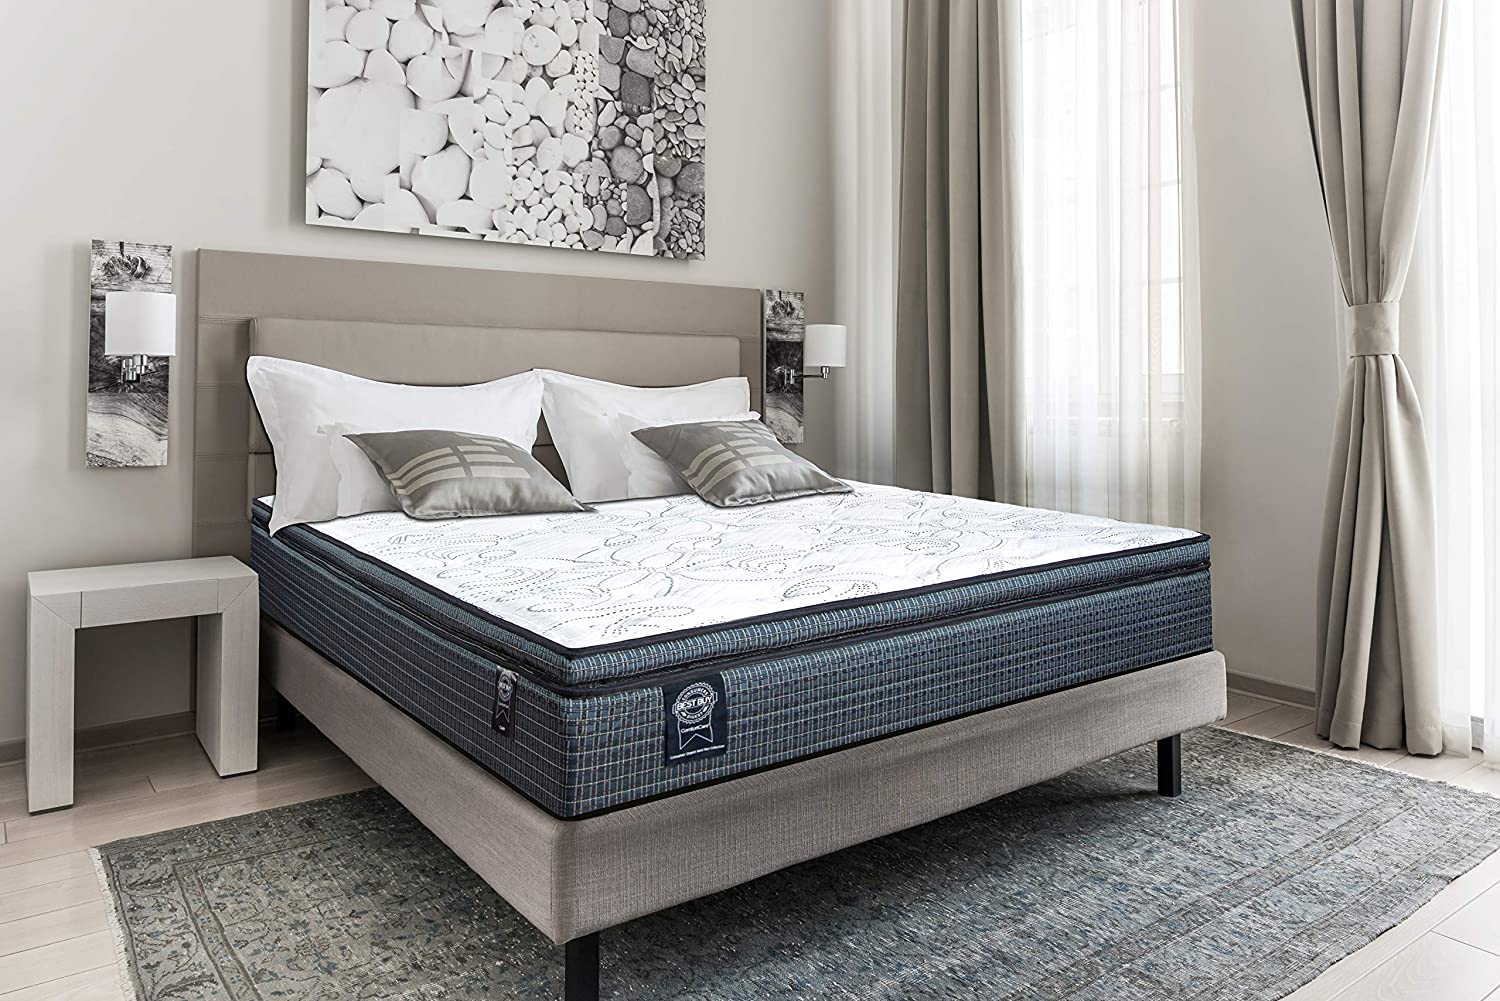 Comfort Care by Restonic Solis Pillow Mattress 35% OFF Top Soldering Full